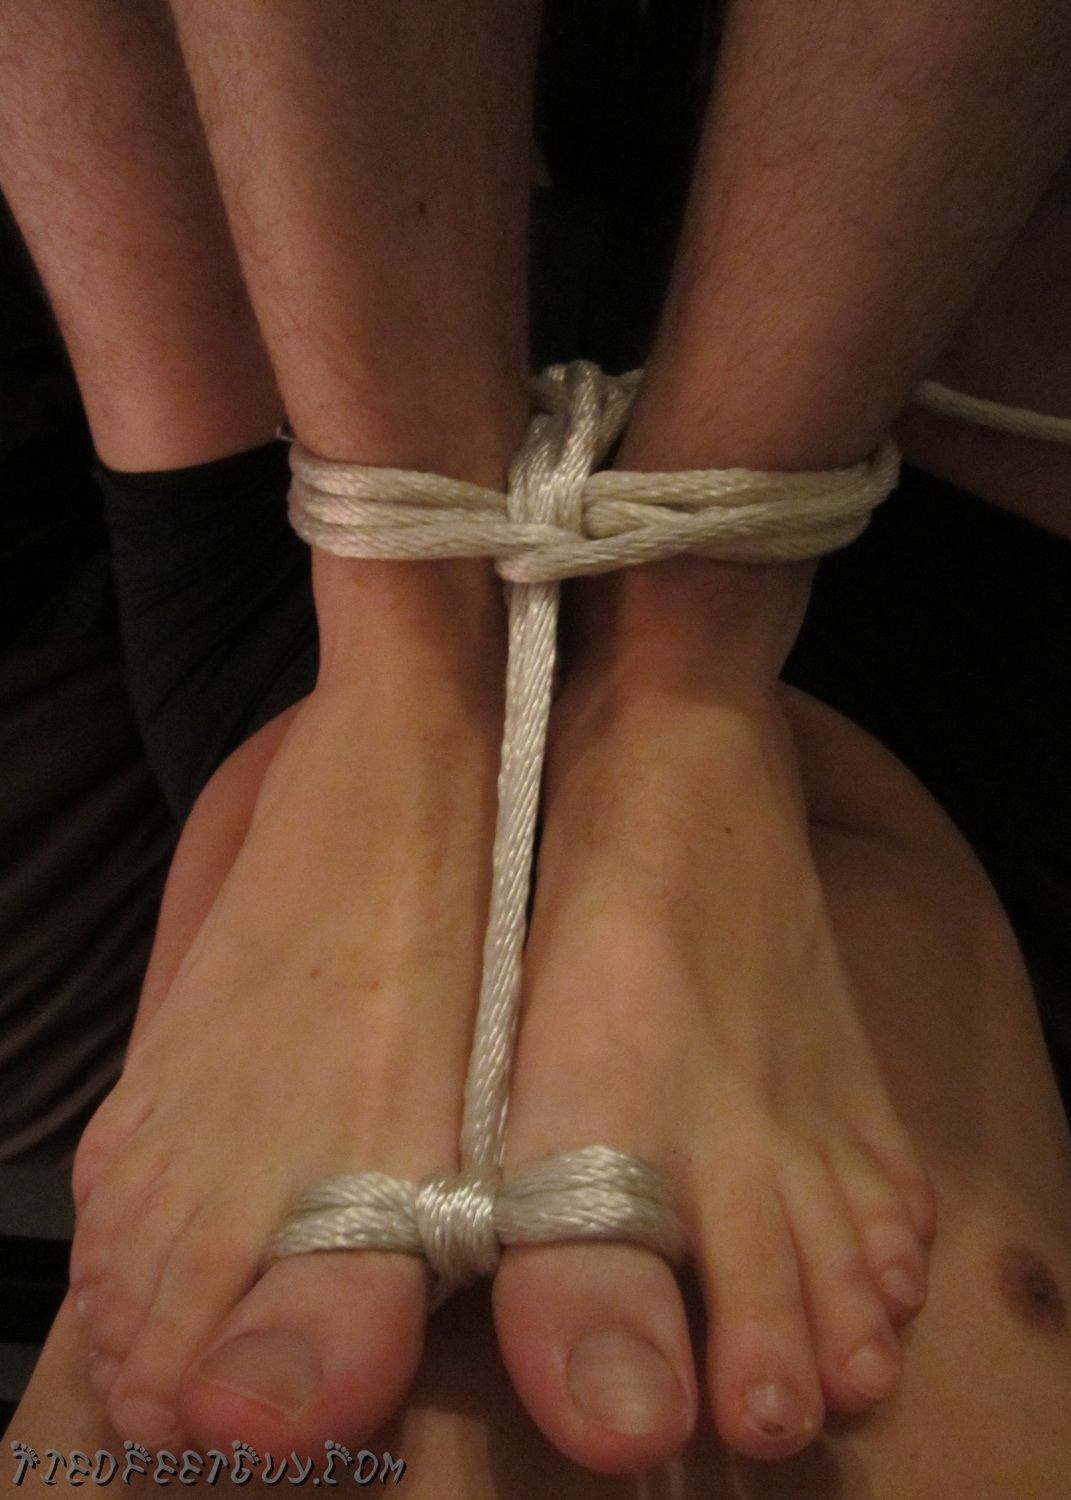 Baring My Soul tied up feet tied up toes